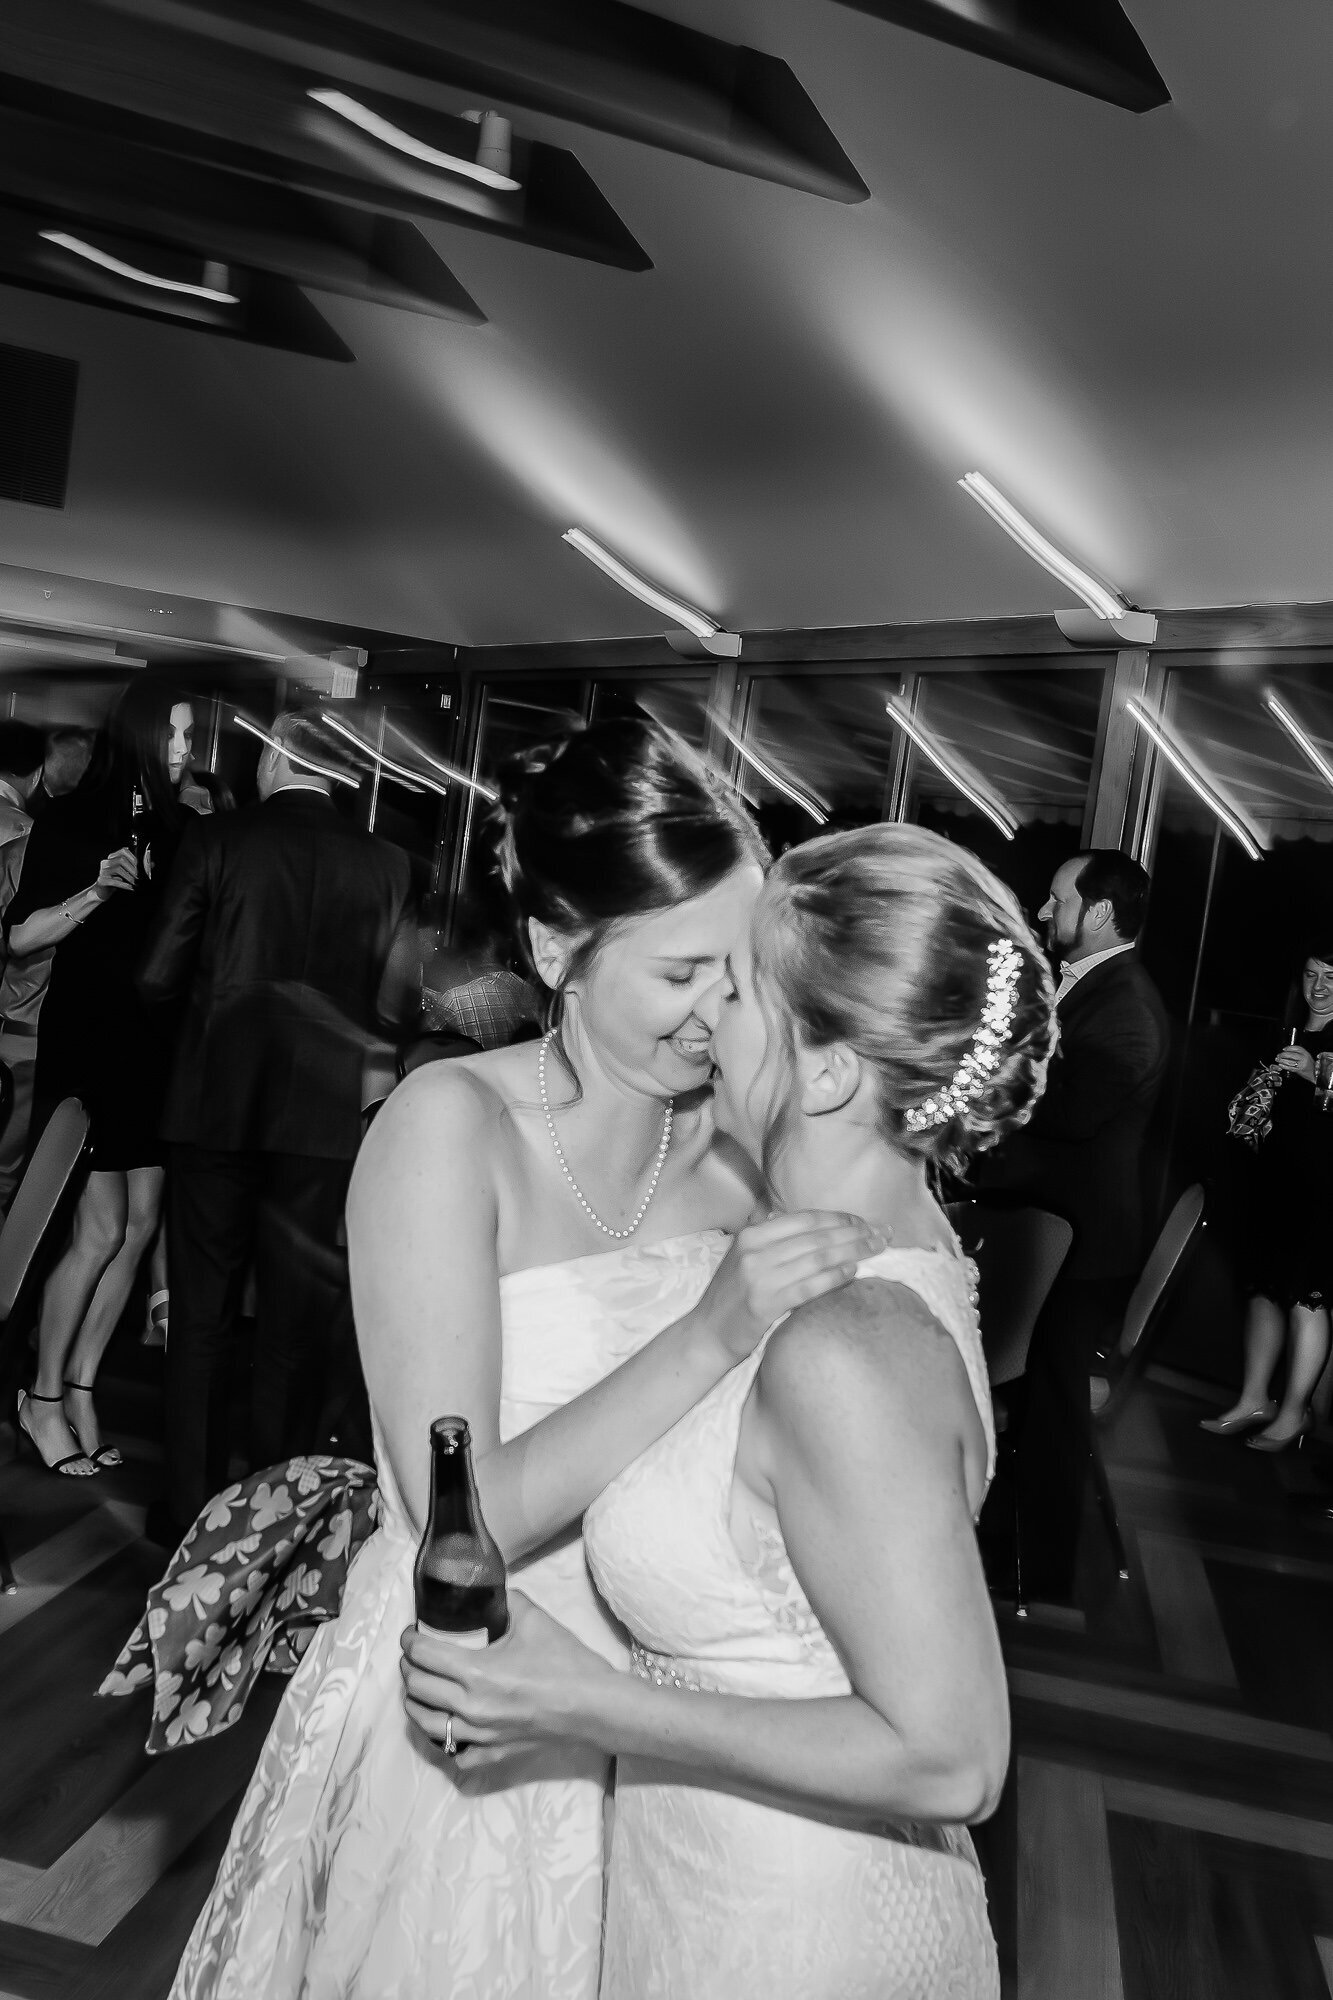 Candid wedding photo of LGBT brides at their St. Louis wedding reception